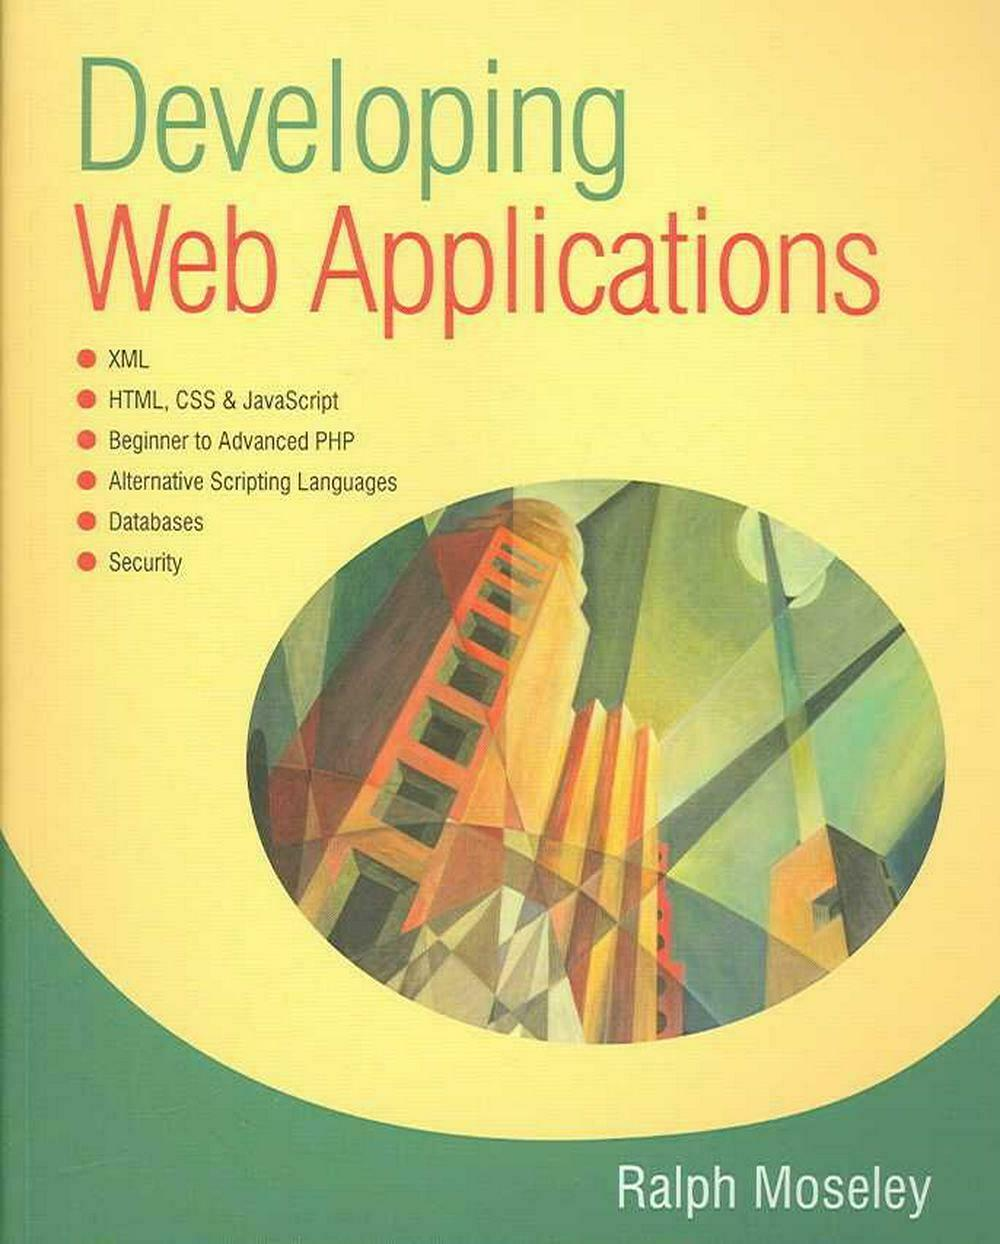 Developing Web Applications by Ralph Moseley (English) Paperback Book Free Shipp |